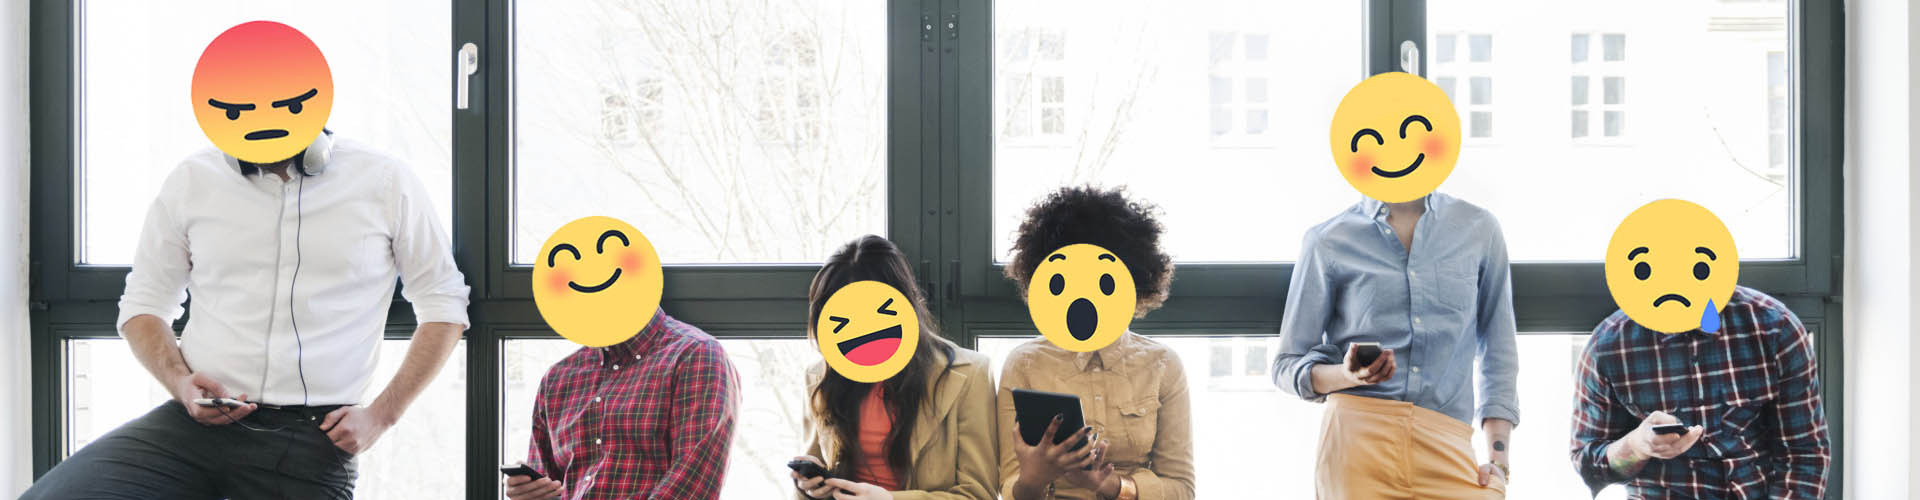 Facebook Reactions – what's it all about?